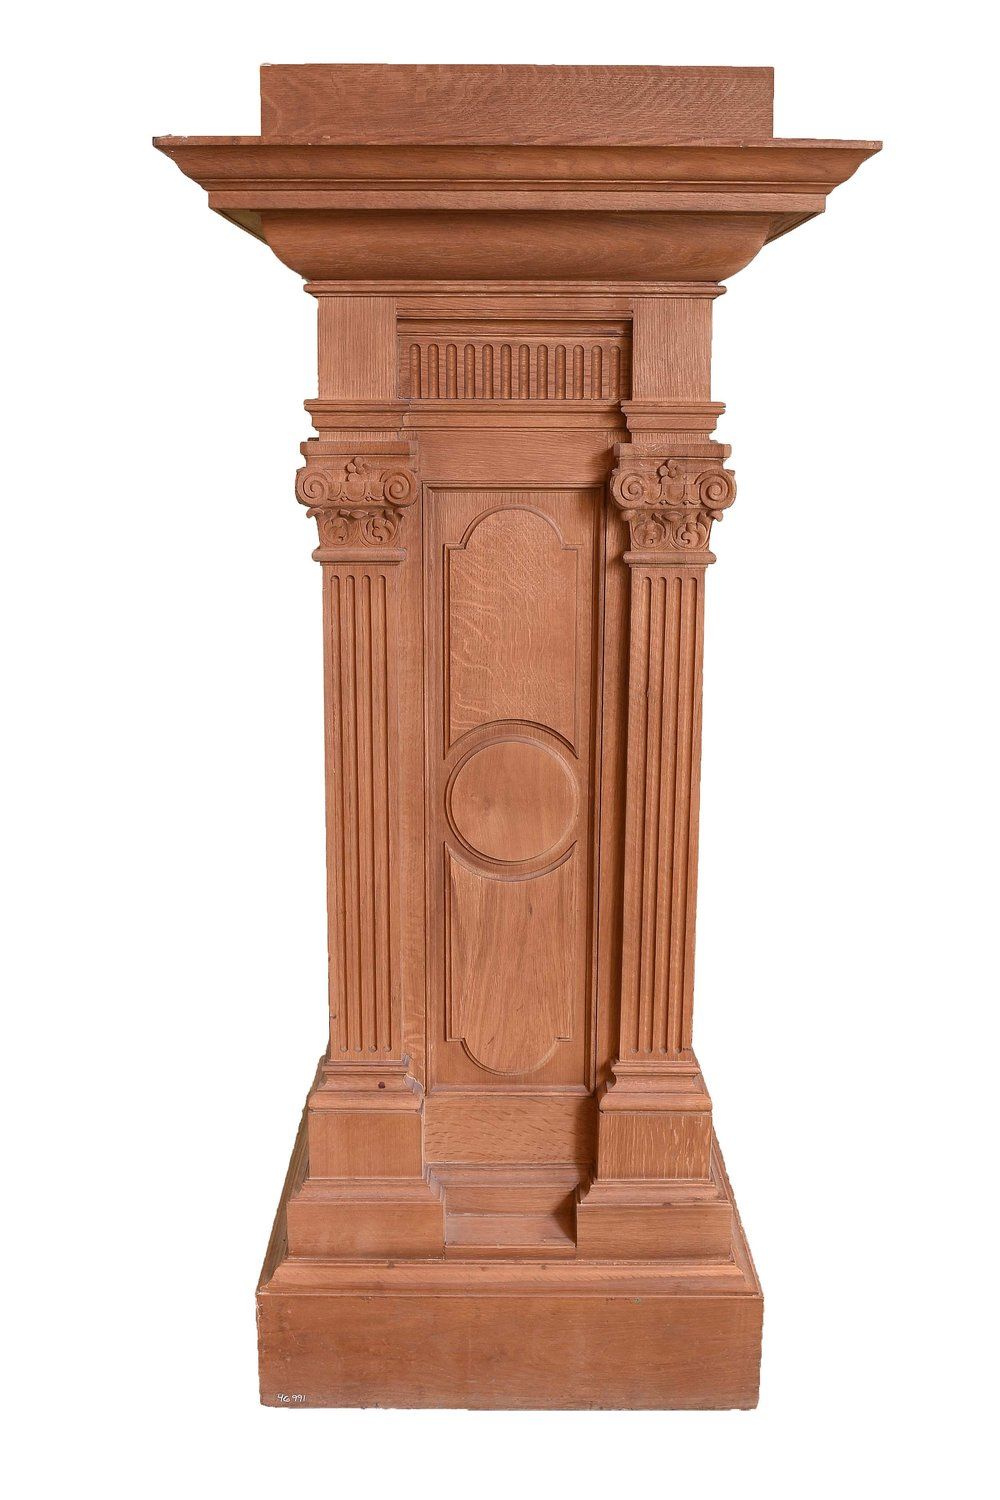 46991 quartersawn pedestal.jpg